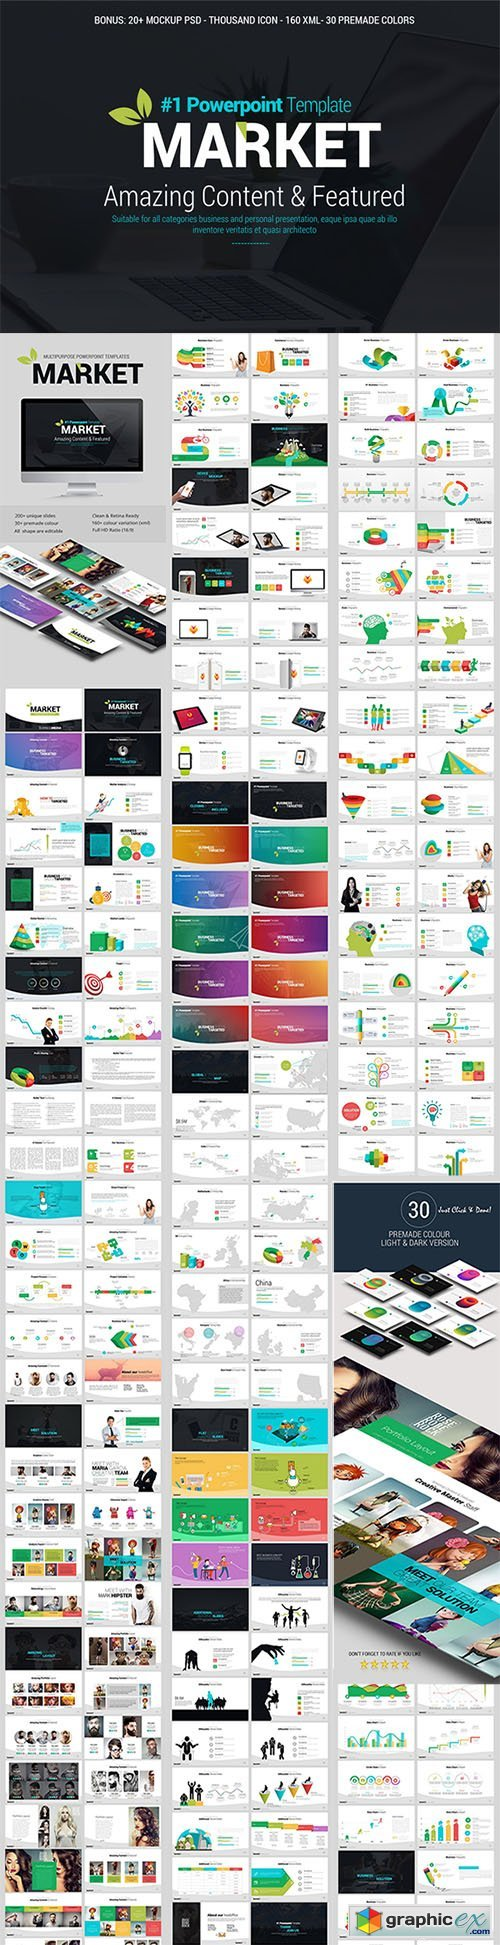 Market powerpoint template free download vector stock image market powerpoint template toneelgroepblik Gallery